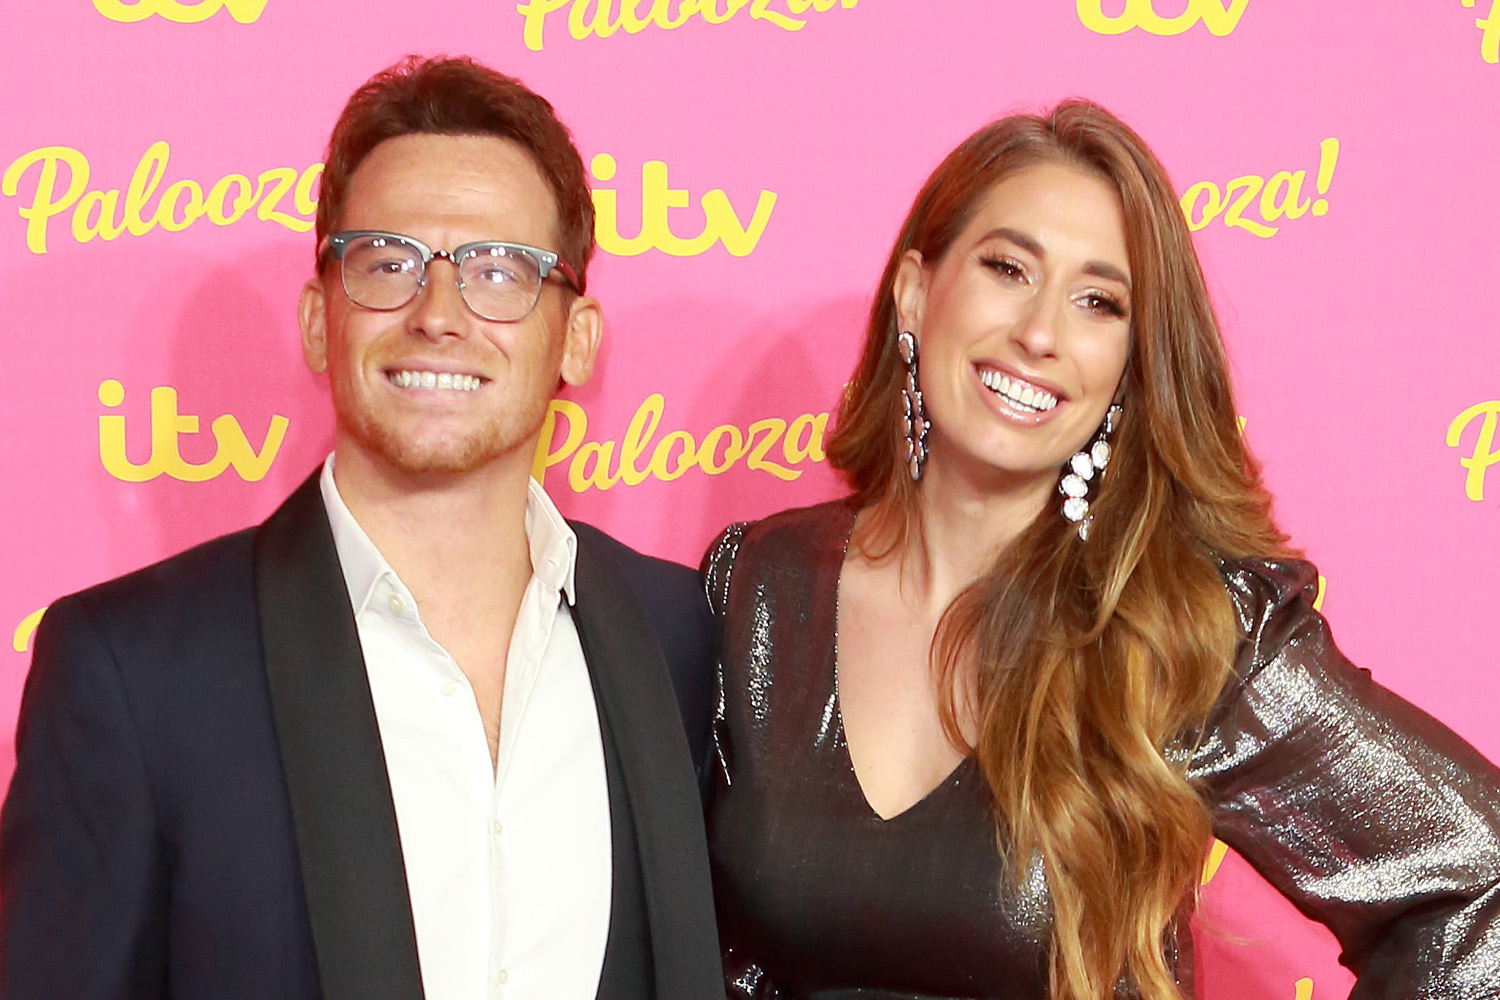 Stacey Solomon vows to cheer up Joe Swash after his nan died